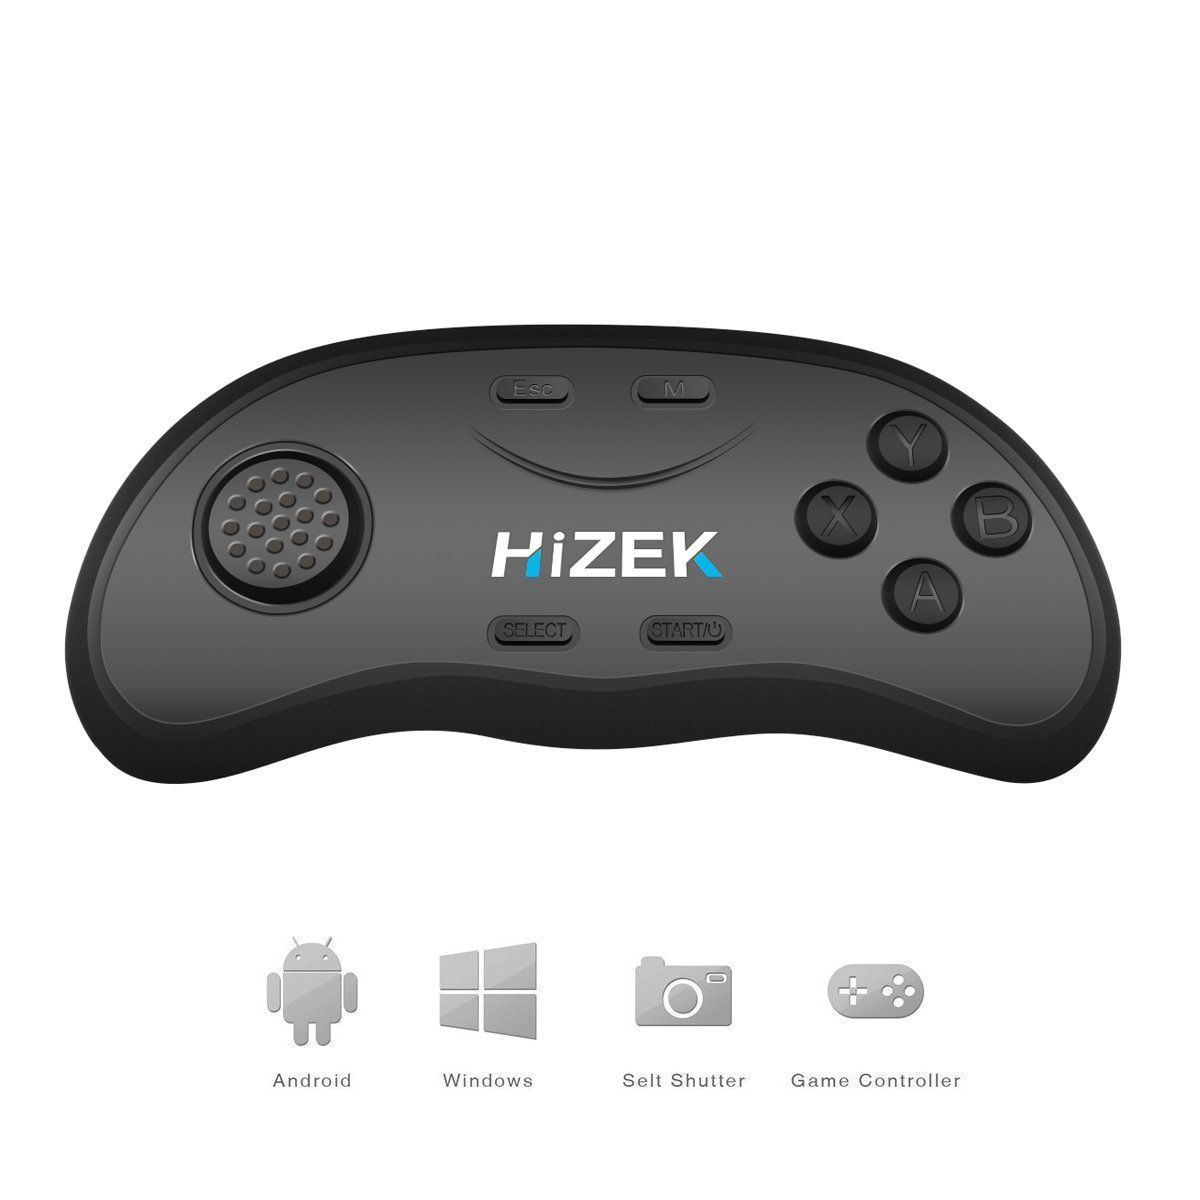 Hizek hz rc2 bluetooth remote controller wireless gamepads mouse hizek hz rc2 bluetooth remote controller wireless gamepads mouse music player for ios android pc sciox Choice Image